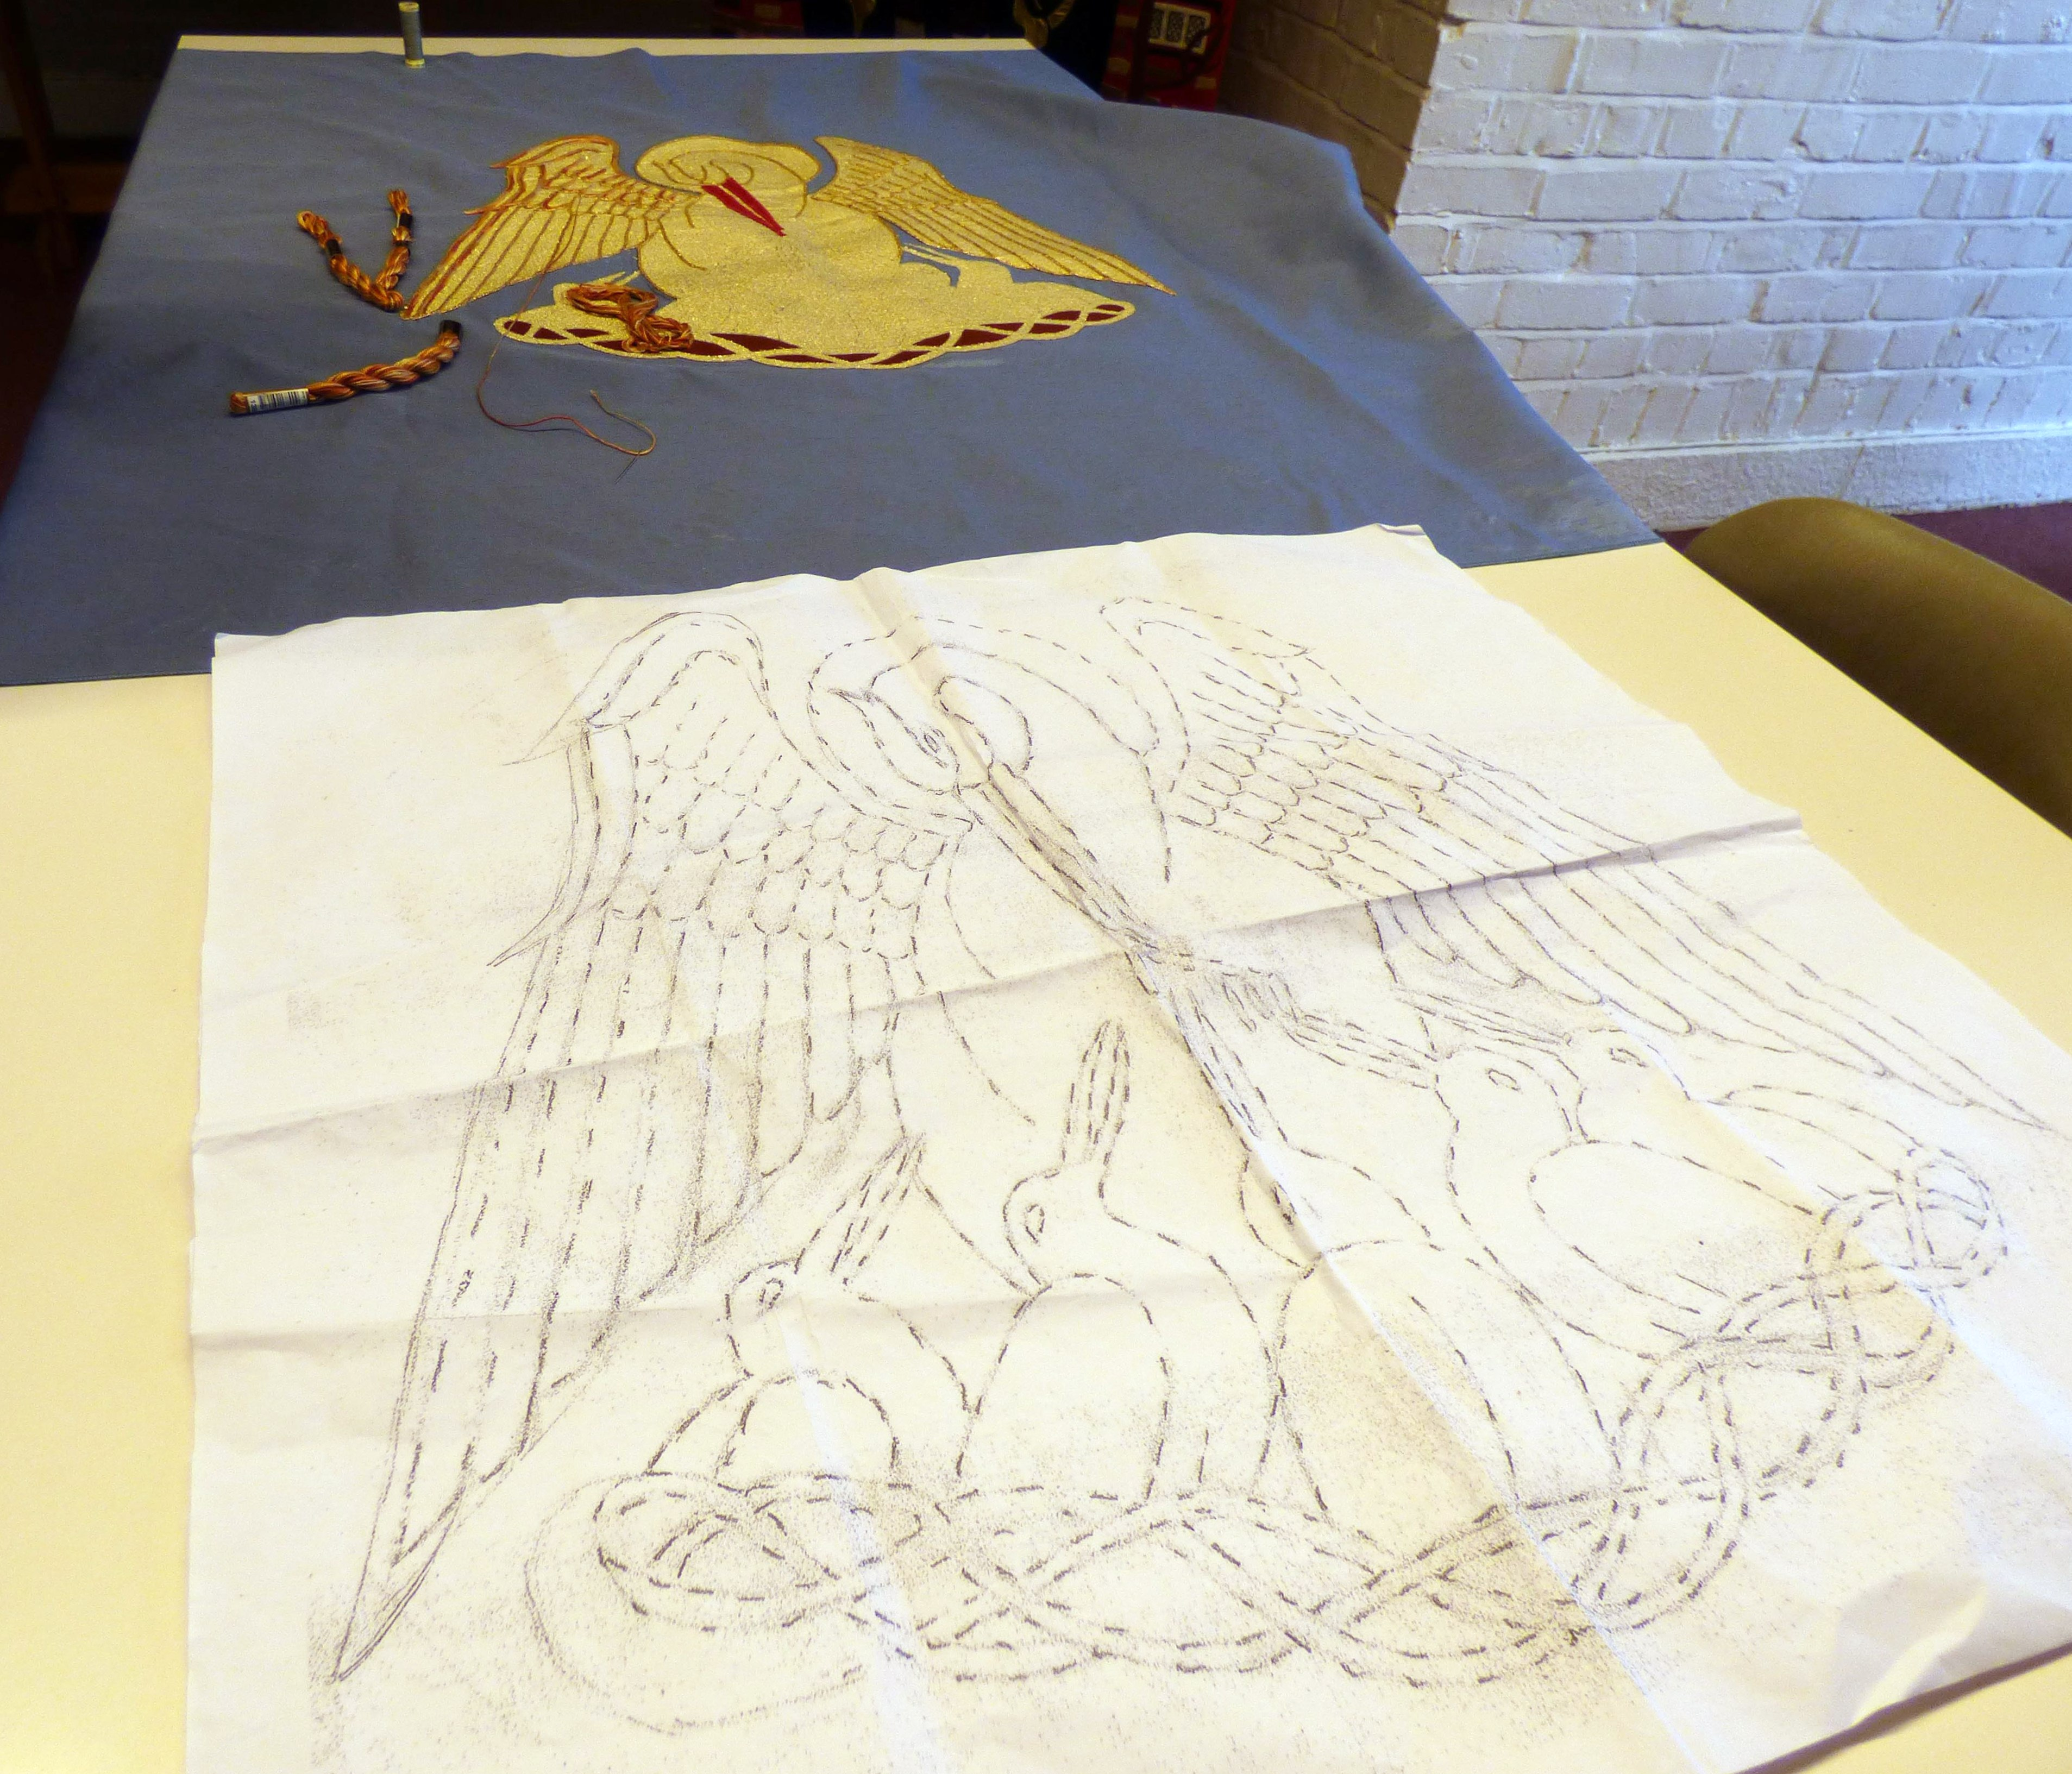 embroidery under construction at Embroidery Studio open day, Liverpool Metropolitan Cathedral 2017